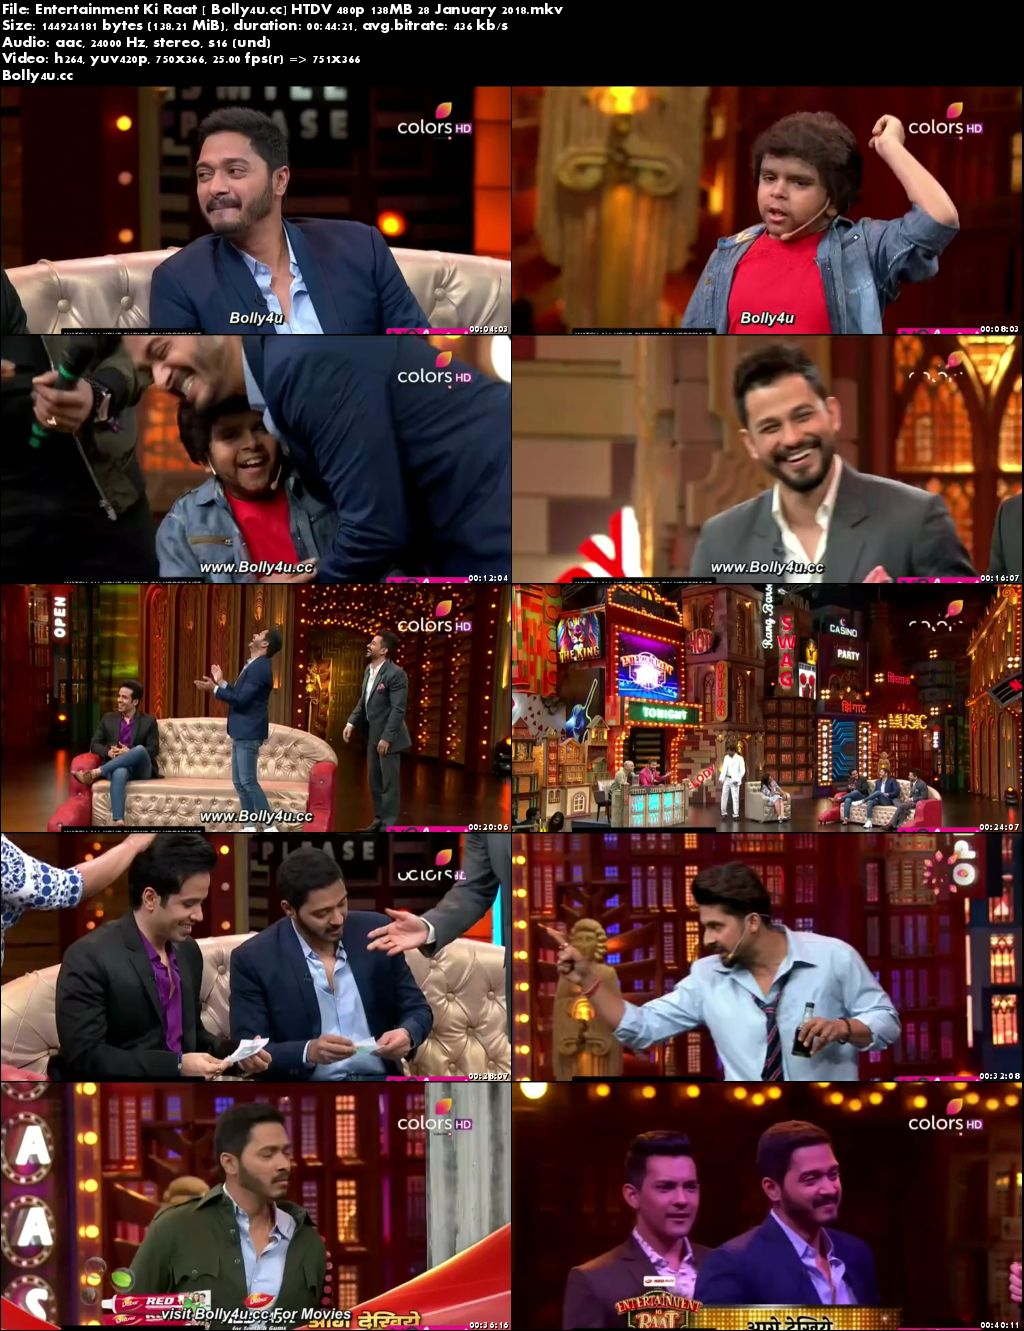 Entertainment Ki Raat HTDV 480p 140MB 28 January 2018 Download